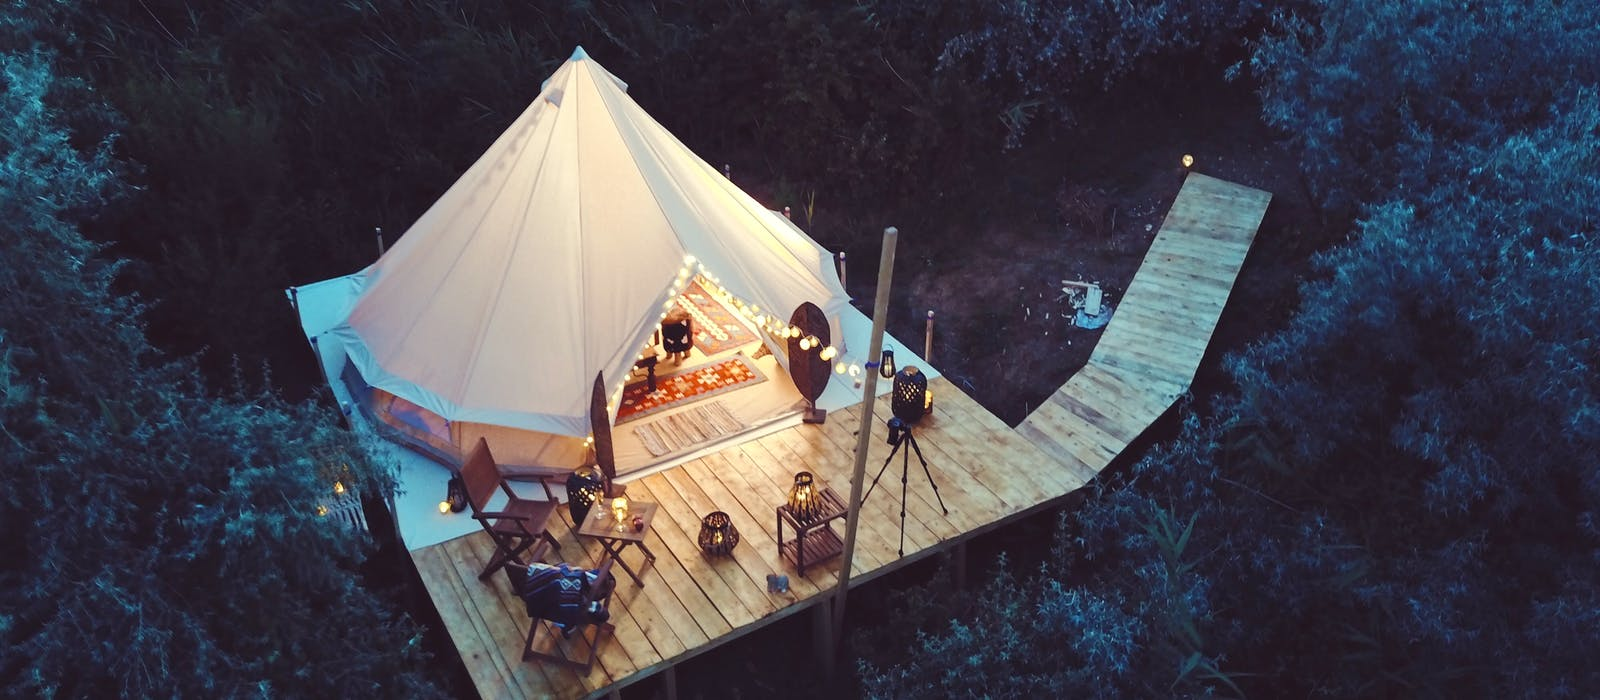 san francisco f3f4c 3a764 The Best Camping Gear for Your Campsite